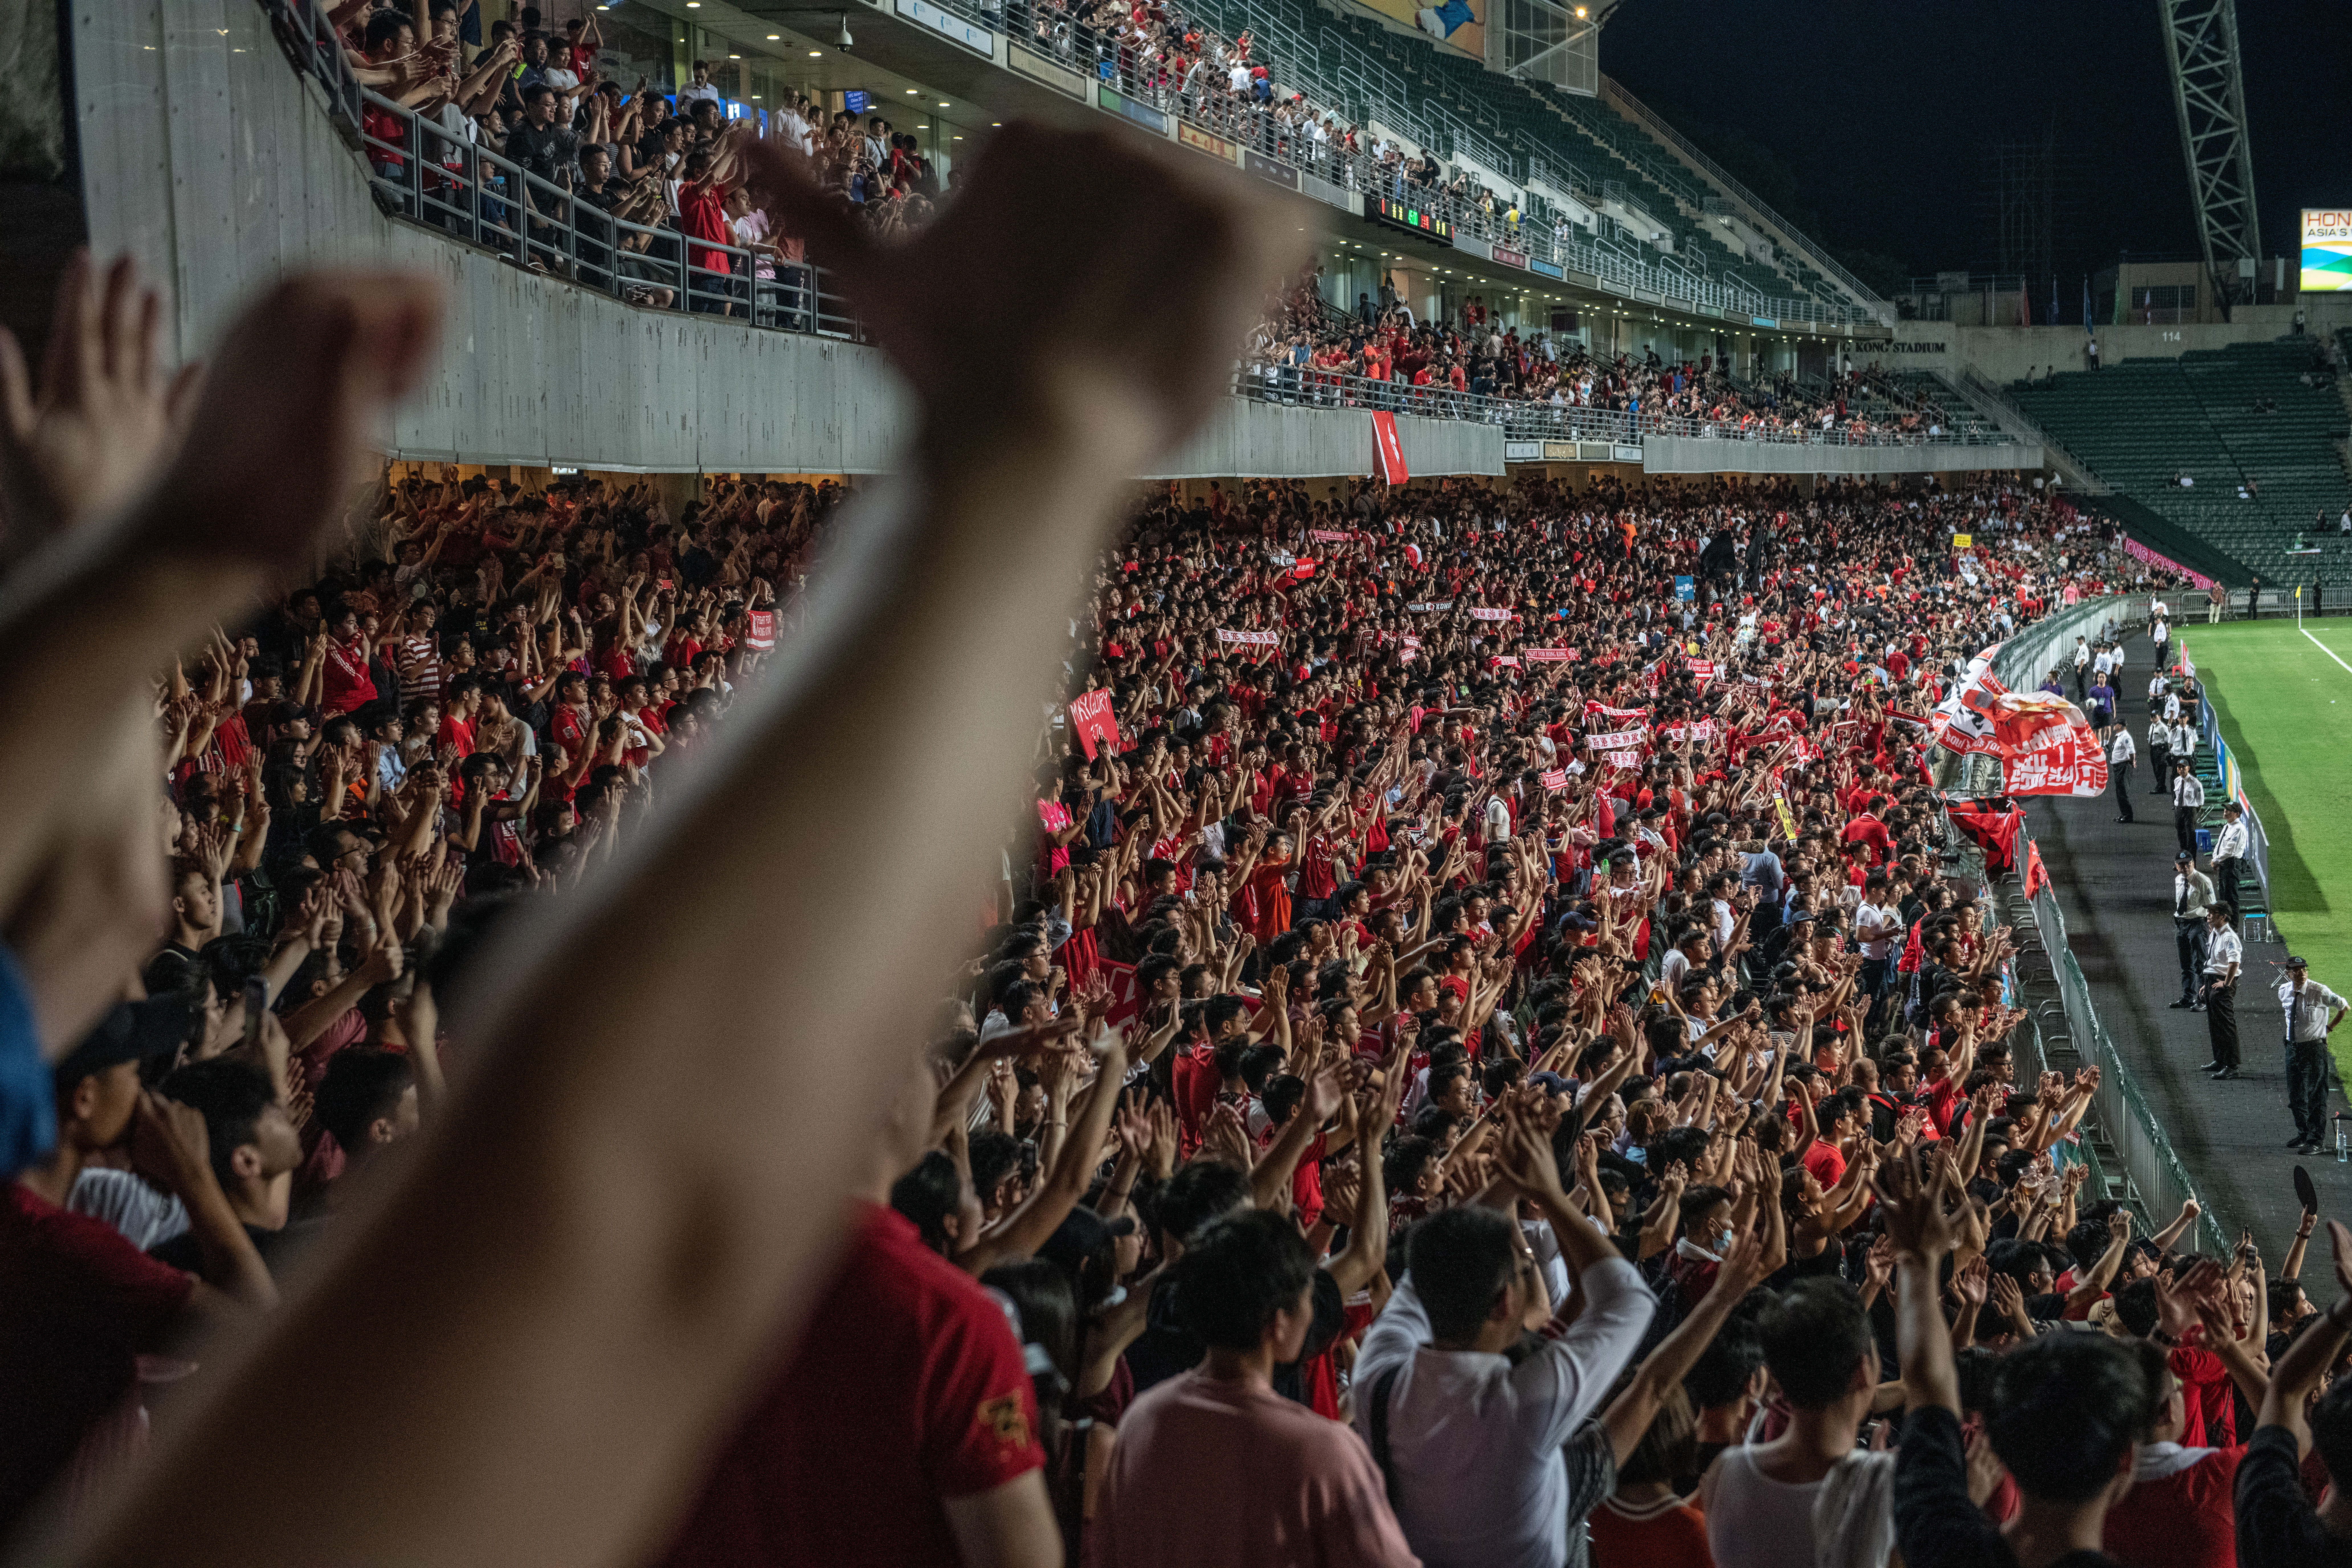 Hong Kong Soccer Fans Loudly Boo Chinese National Anthem The Boston Globe